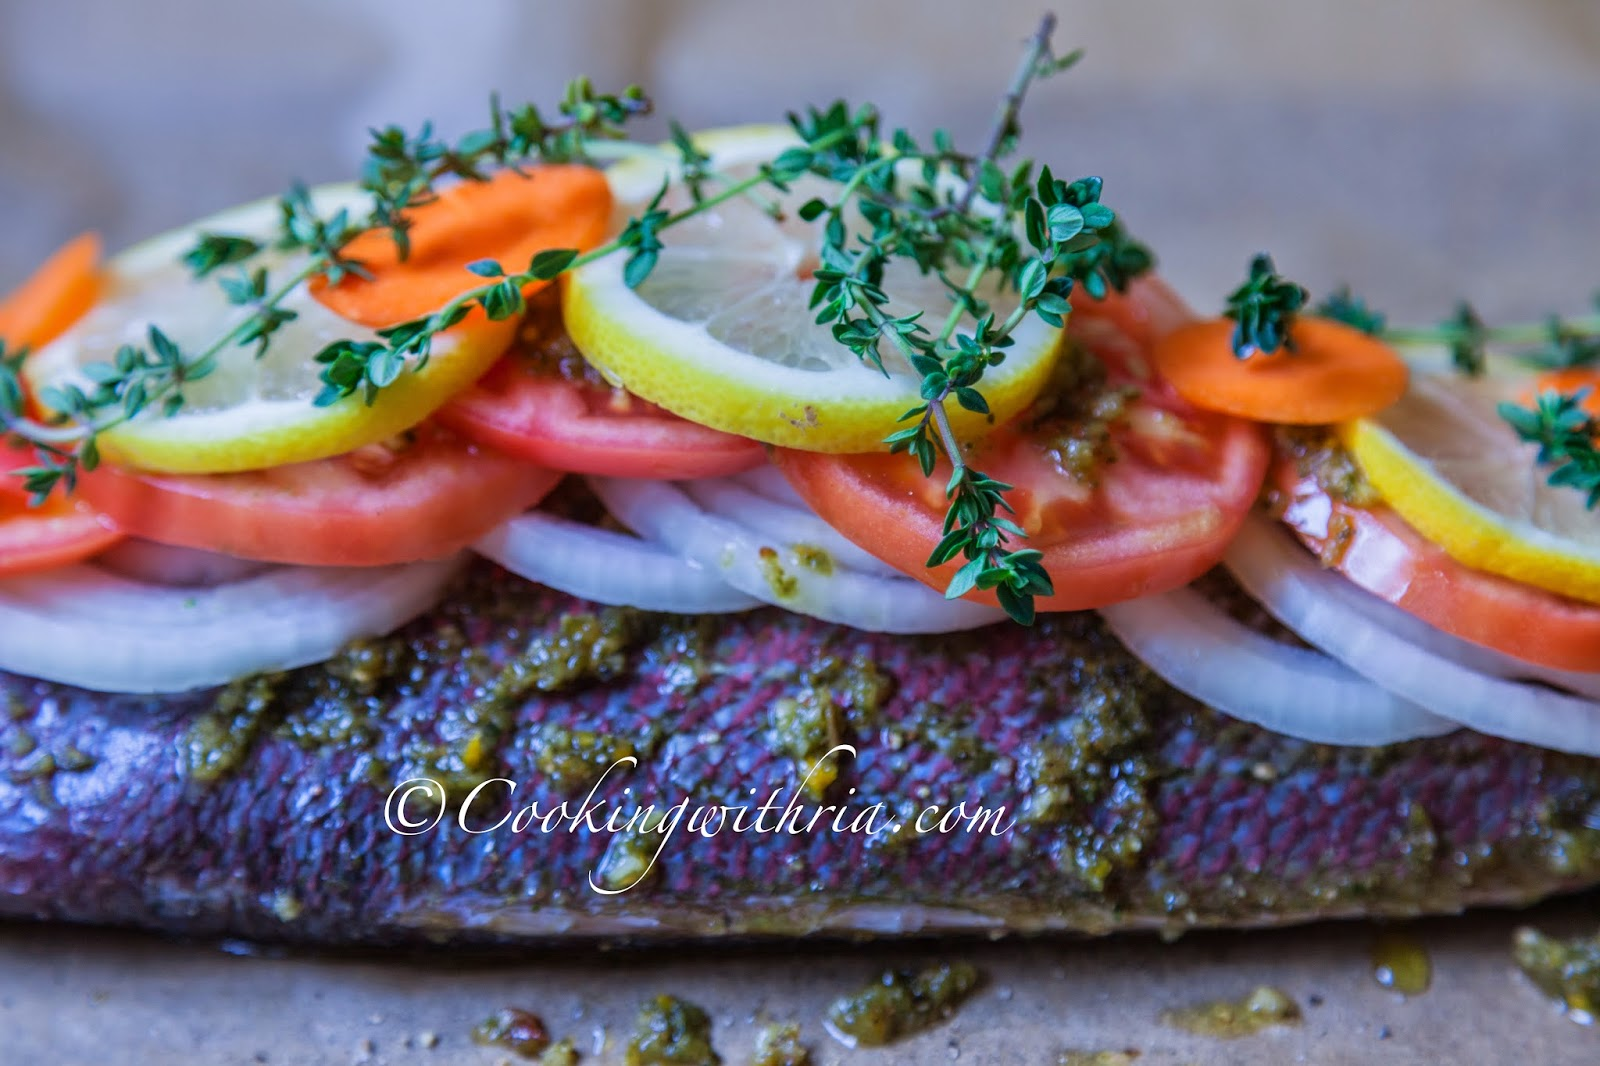 I always finish with another dusting of salt and pepper for Cooking fish in parchment paper